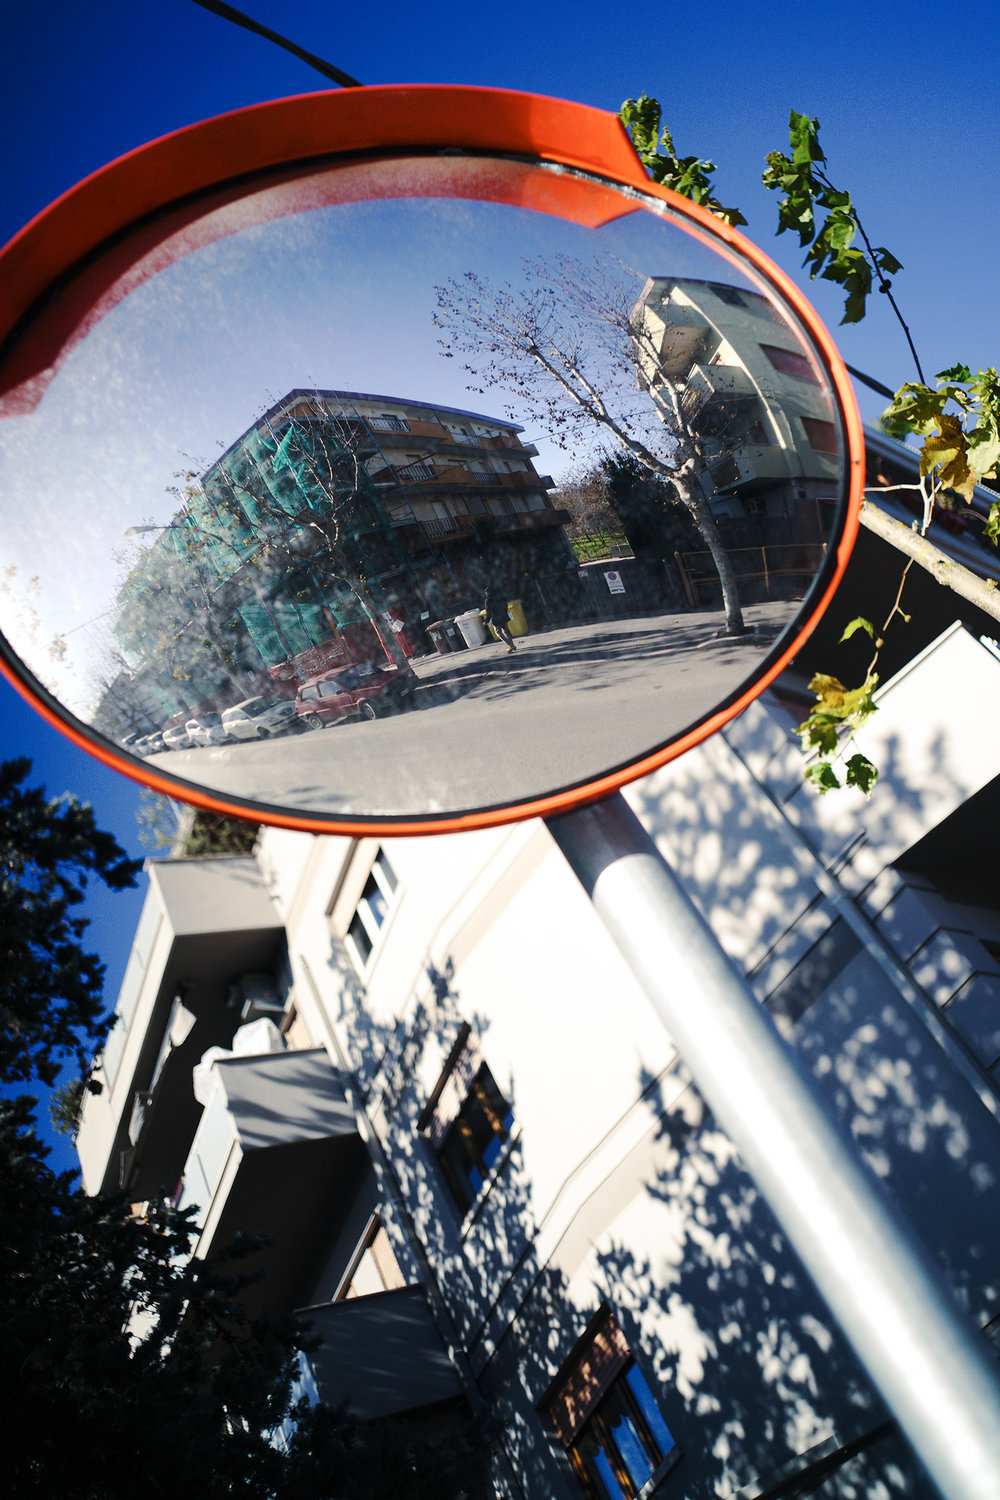 Road bike mirror, Rome, 2016